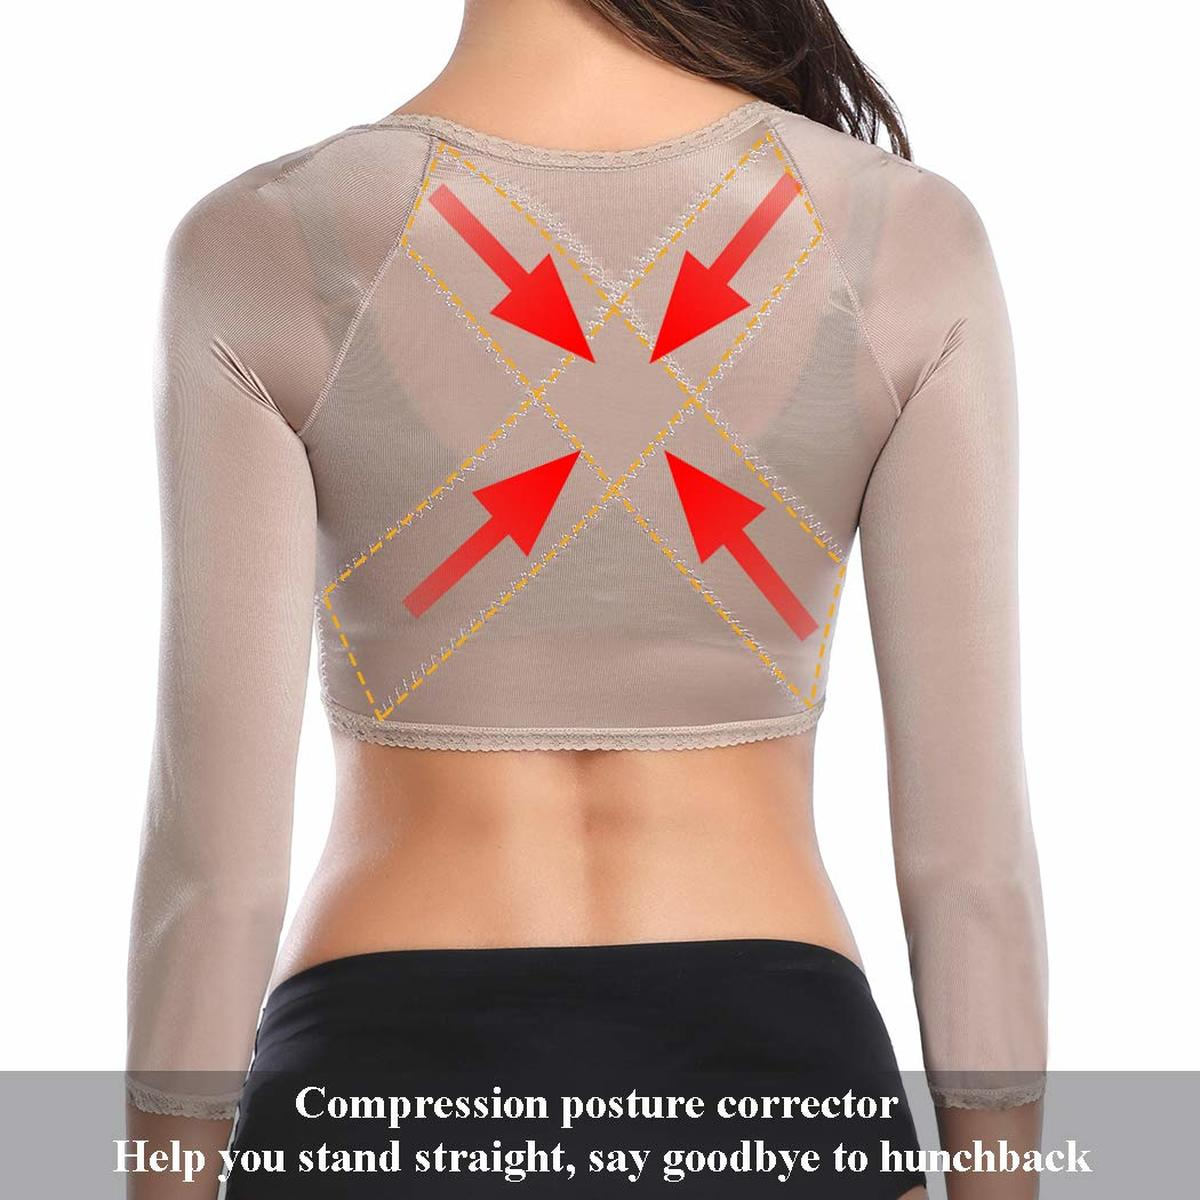 Image 3 - Humpback Posture Corrector Arm Shapers for Women Crop Tops Compression Slimming Upper Surgical Slimmer Arm Vest Shapewear-in Tops from Underwear & Sleepwears